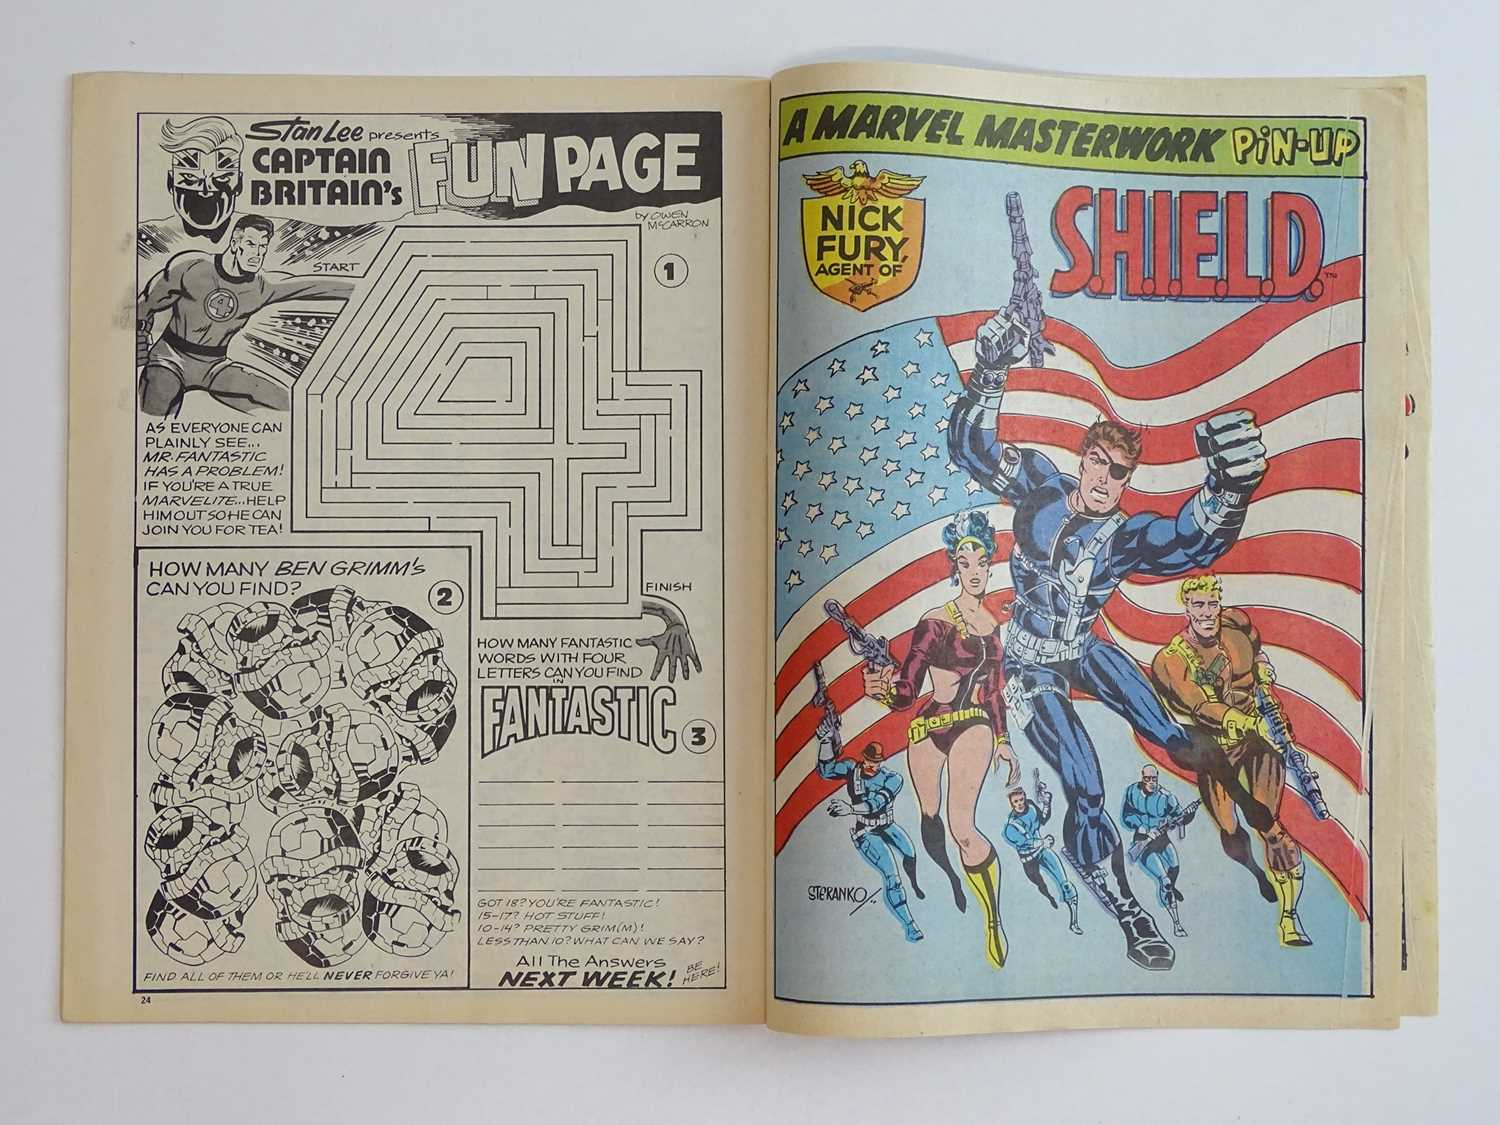 CAPTAIN BRITAIN #1 - (1976 - BRITISH MARVEL) - Origin and First appearance of Captain Britain - Image 6 of 12